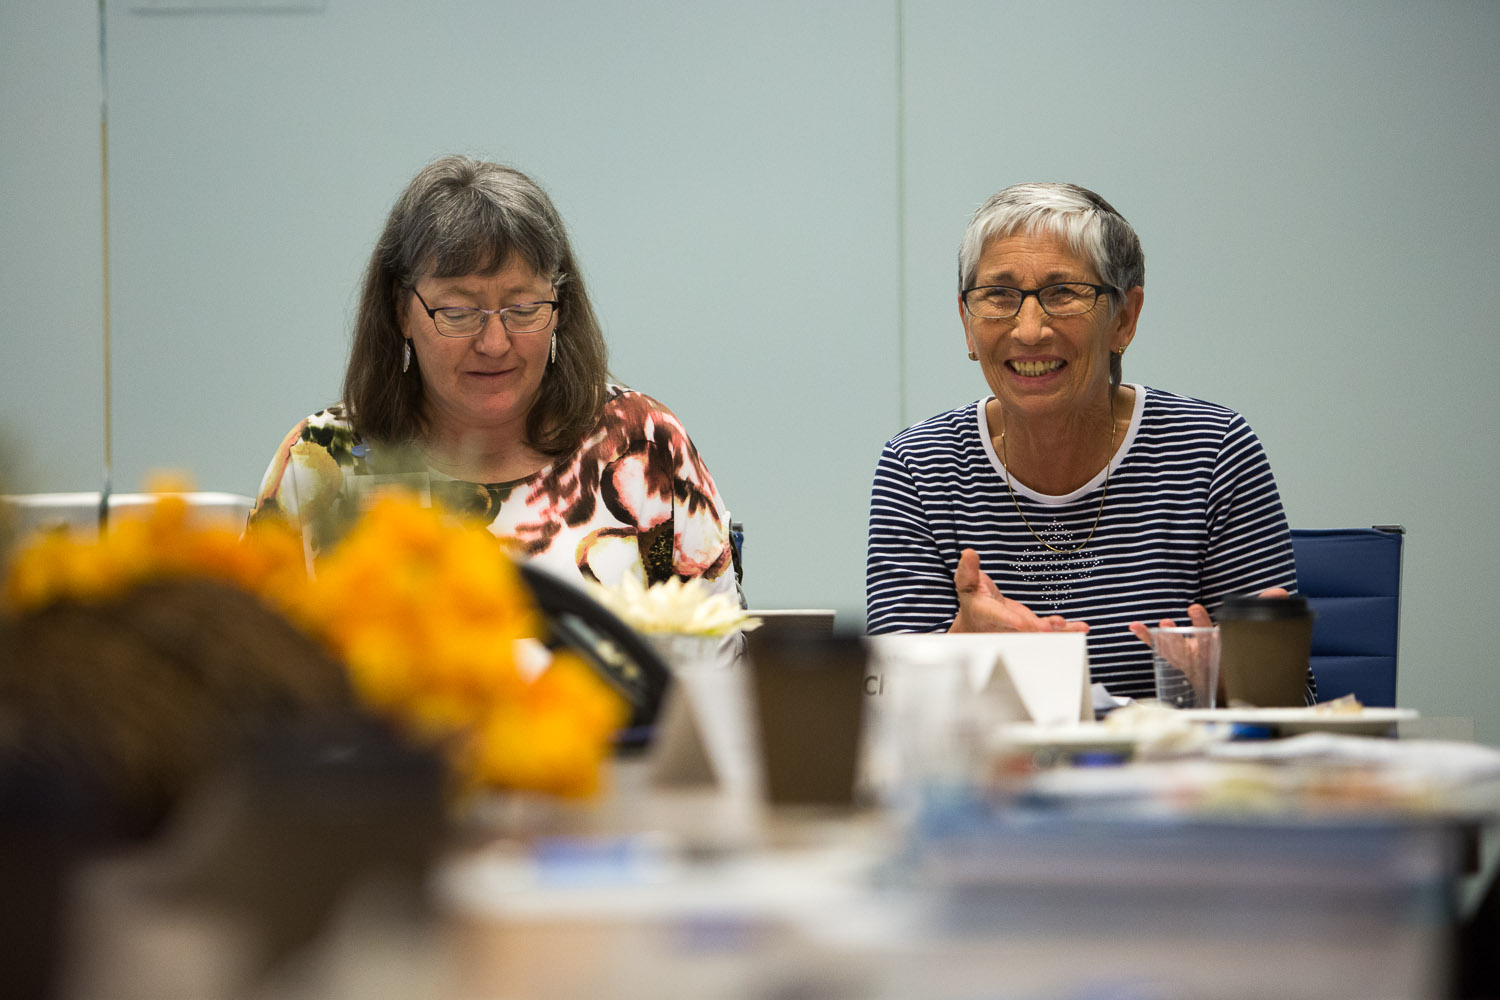 Caption: Chris Kensit (right) participating in the Society's Experience of Dementia Across Cultures event in Fall 2018